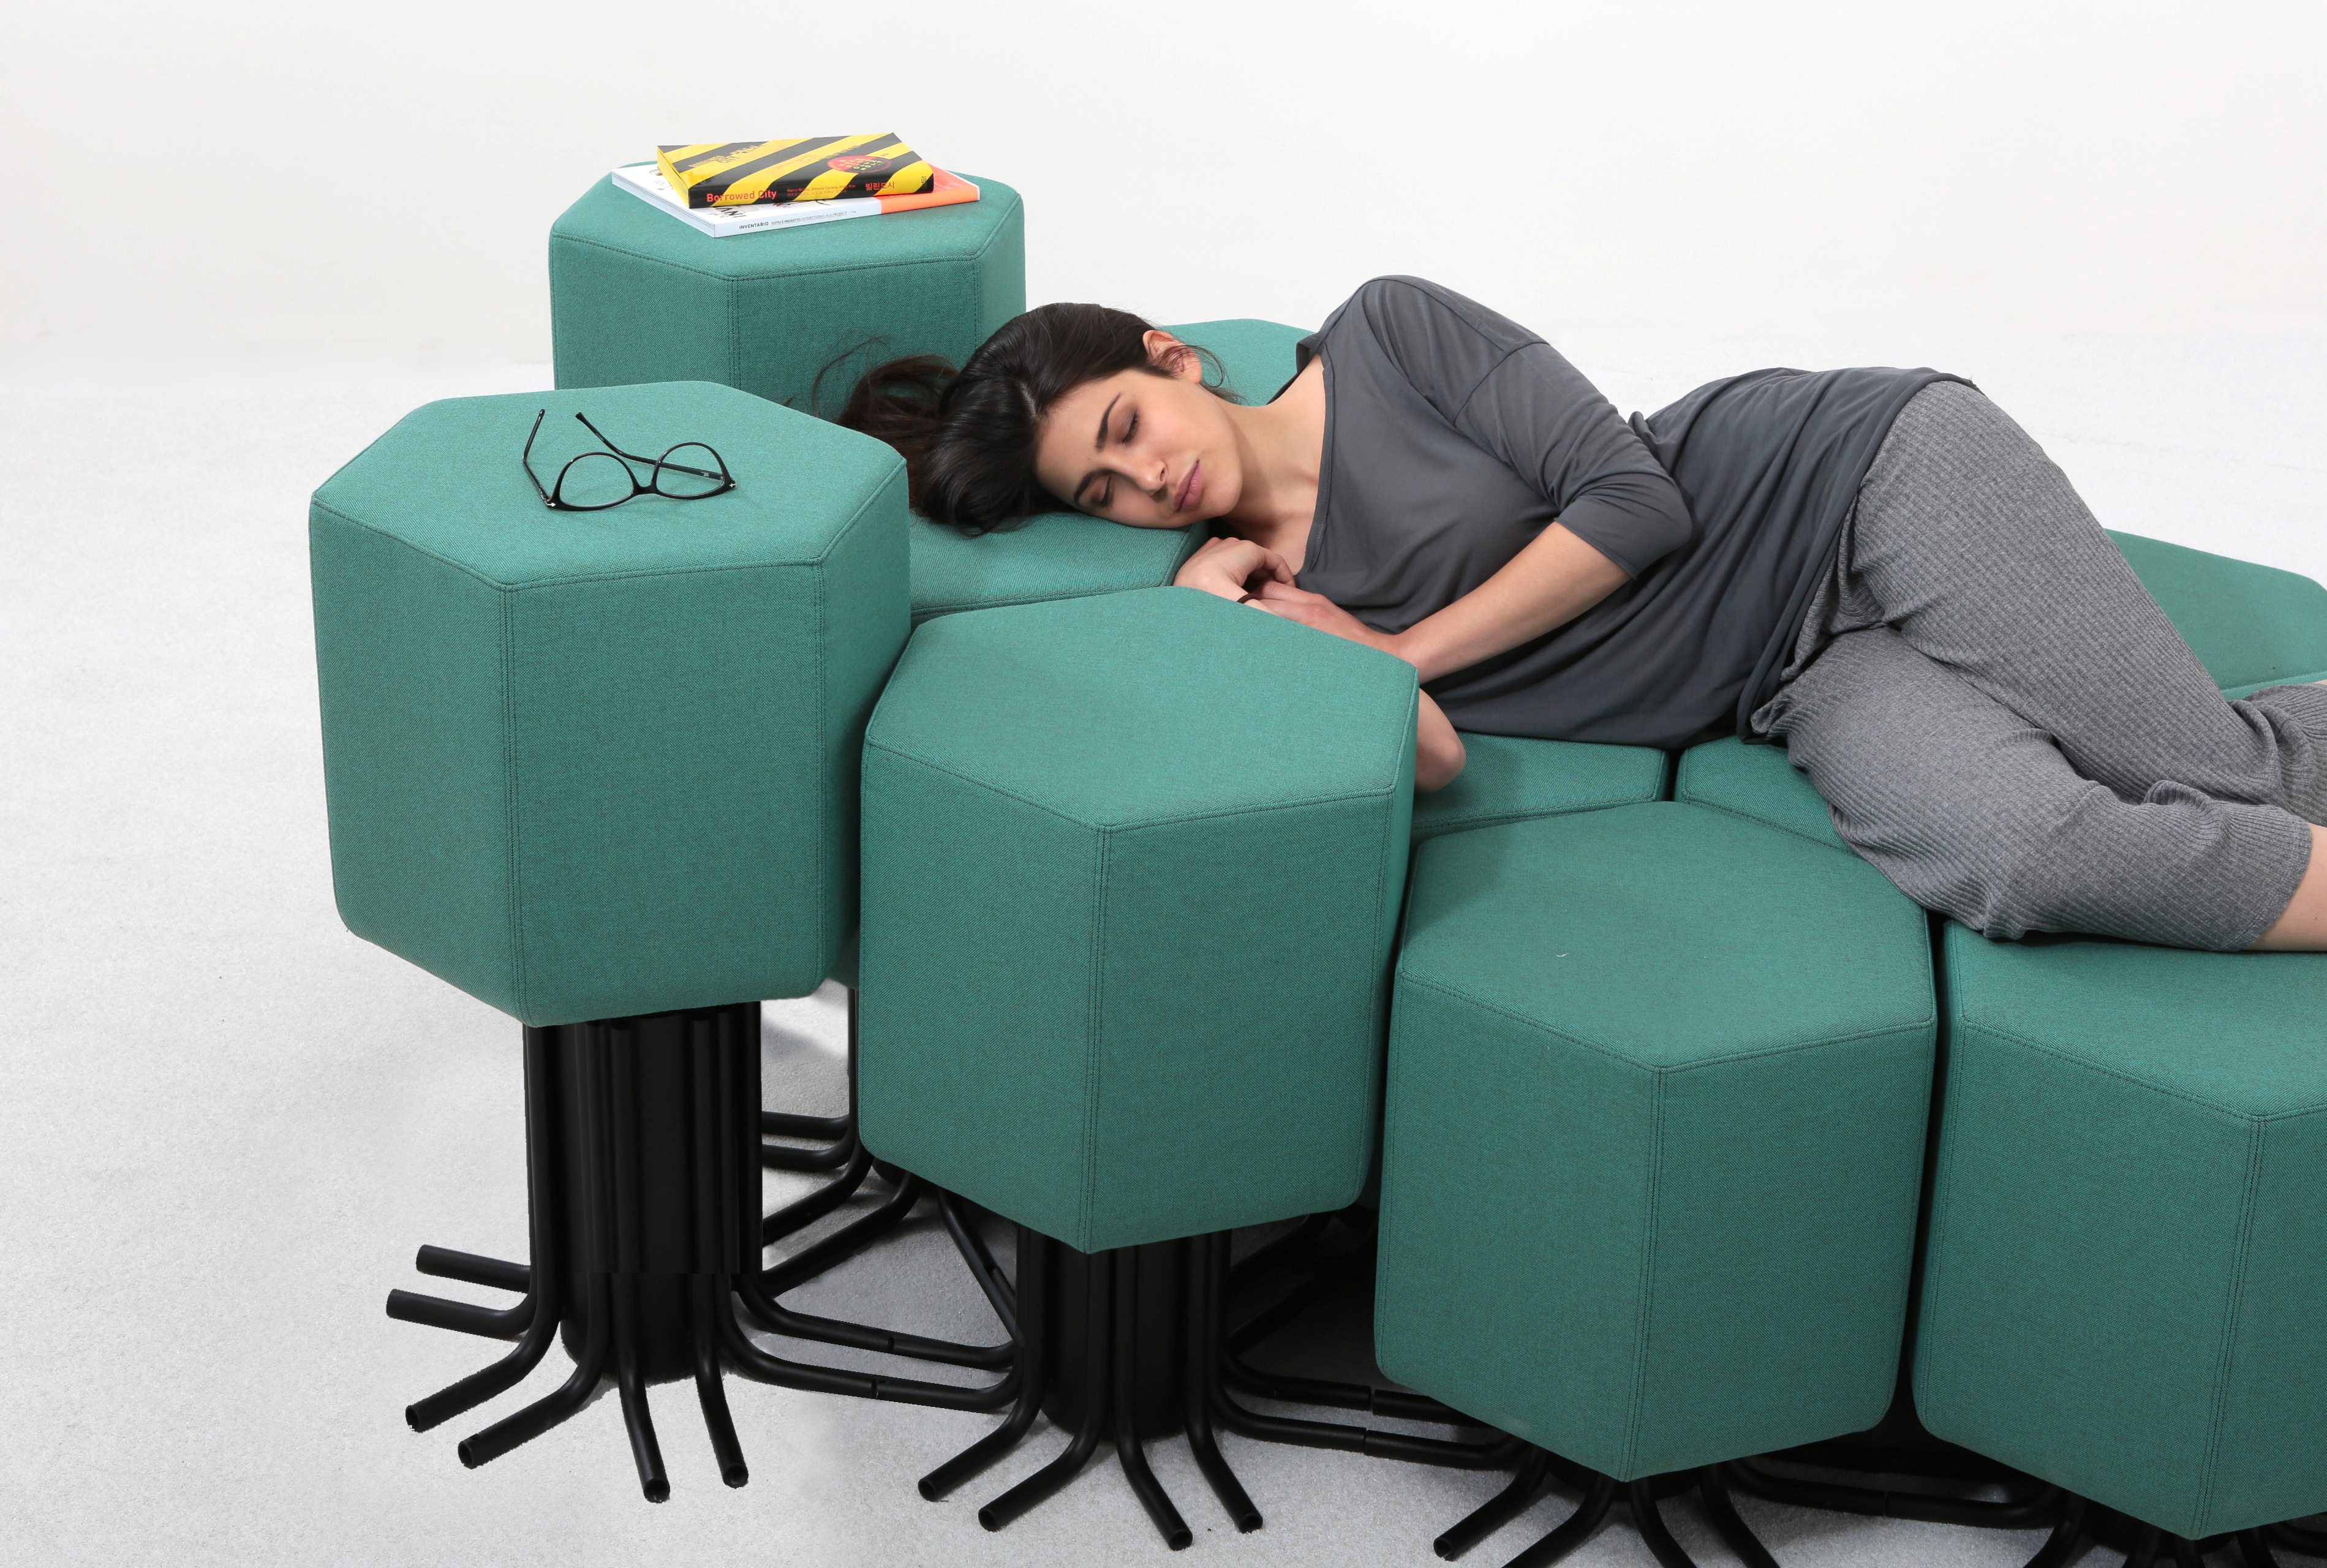 Lift Bit Is The World S First Digitally Transformable Sofa 6sqft